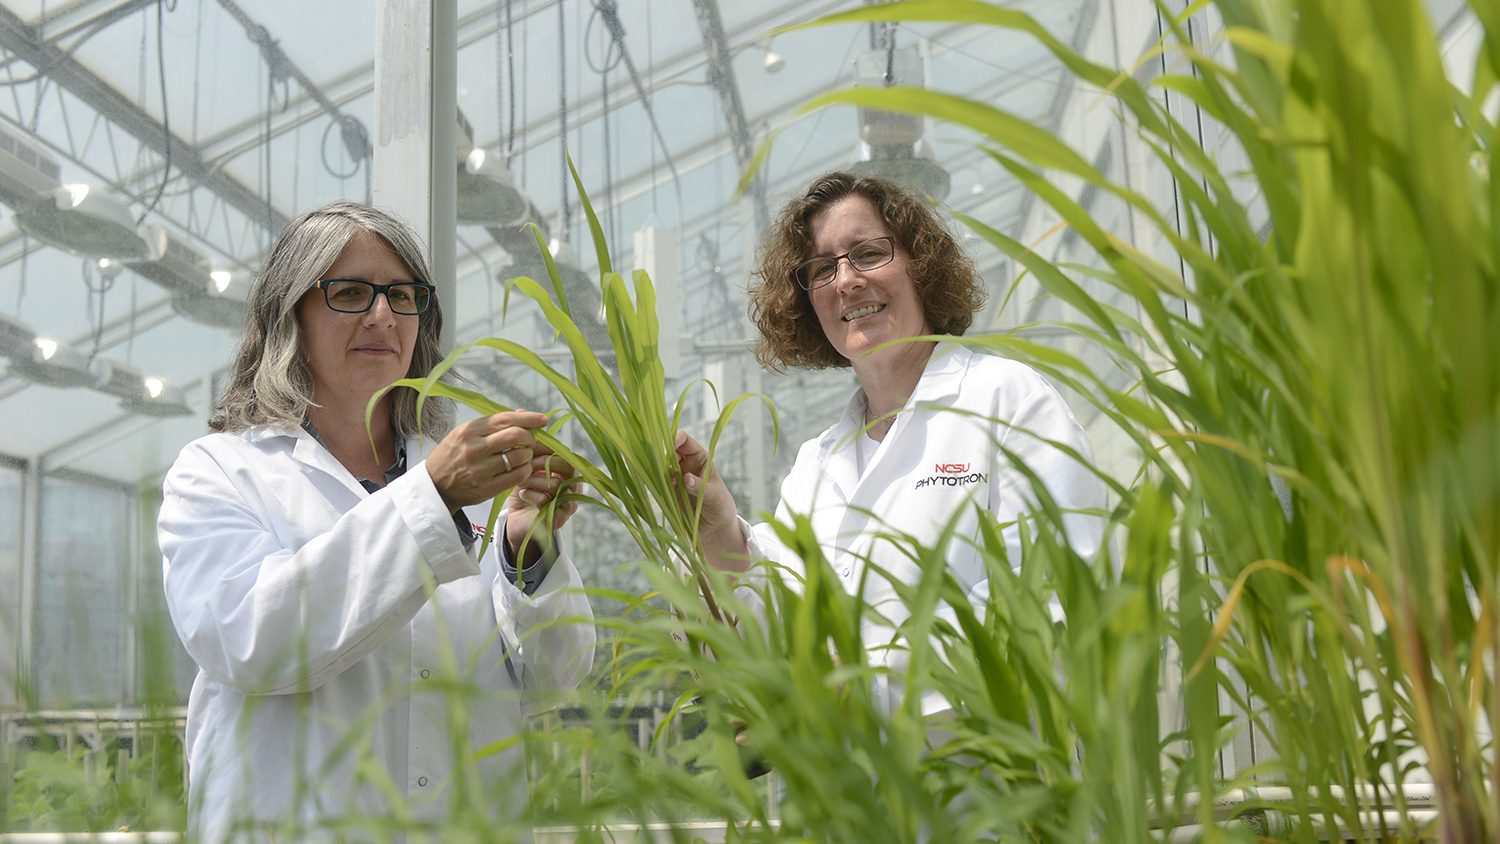 Drs. Anna Whitfield & Dorith Rotenberg research insect-transmitted plant diseases